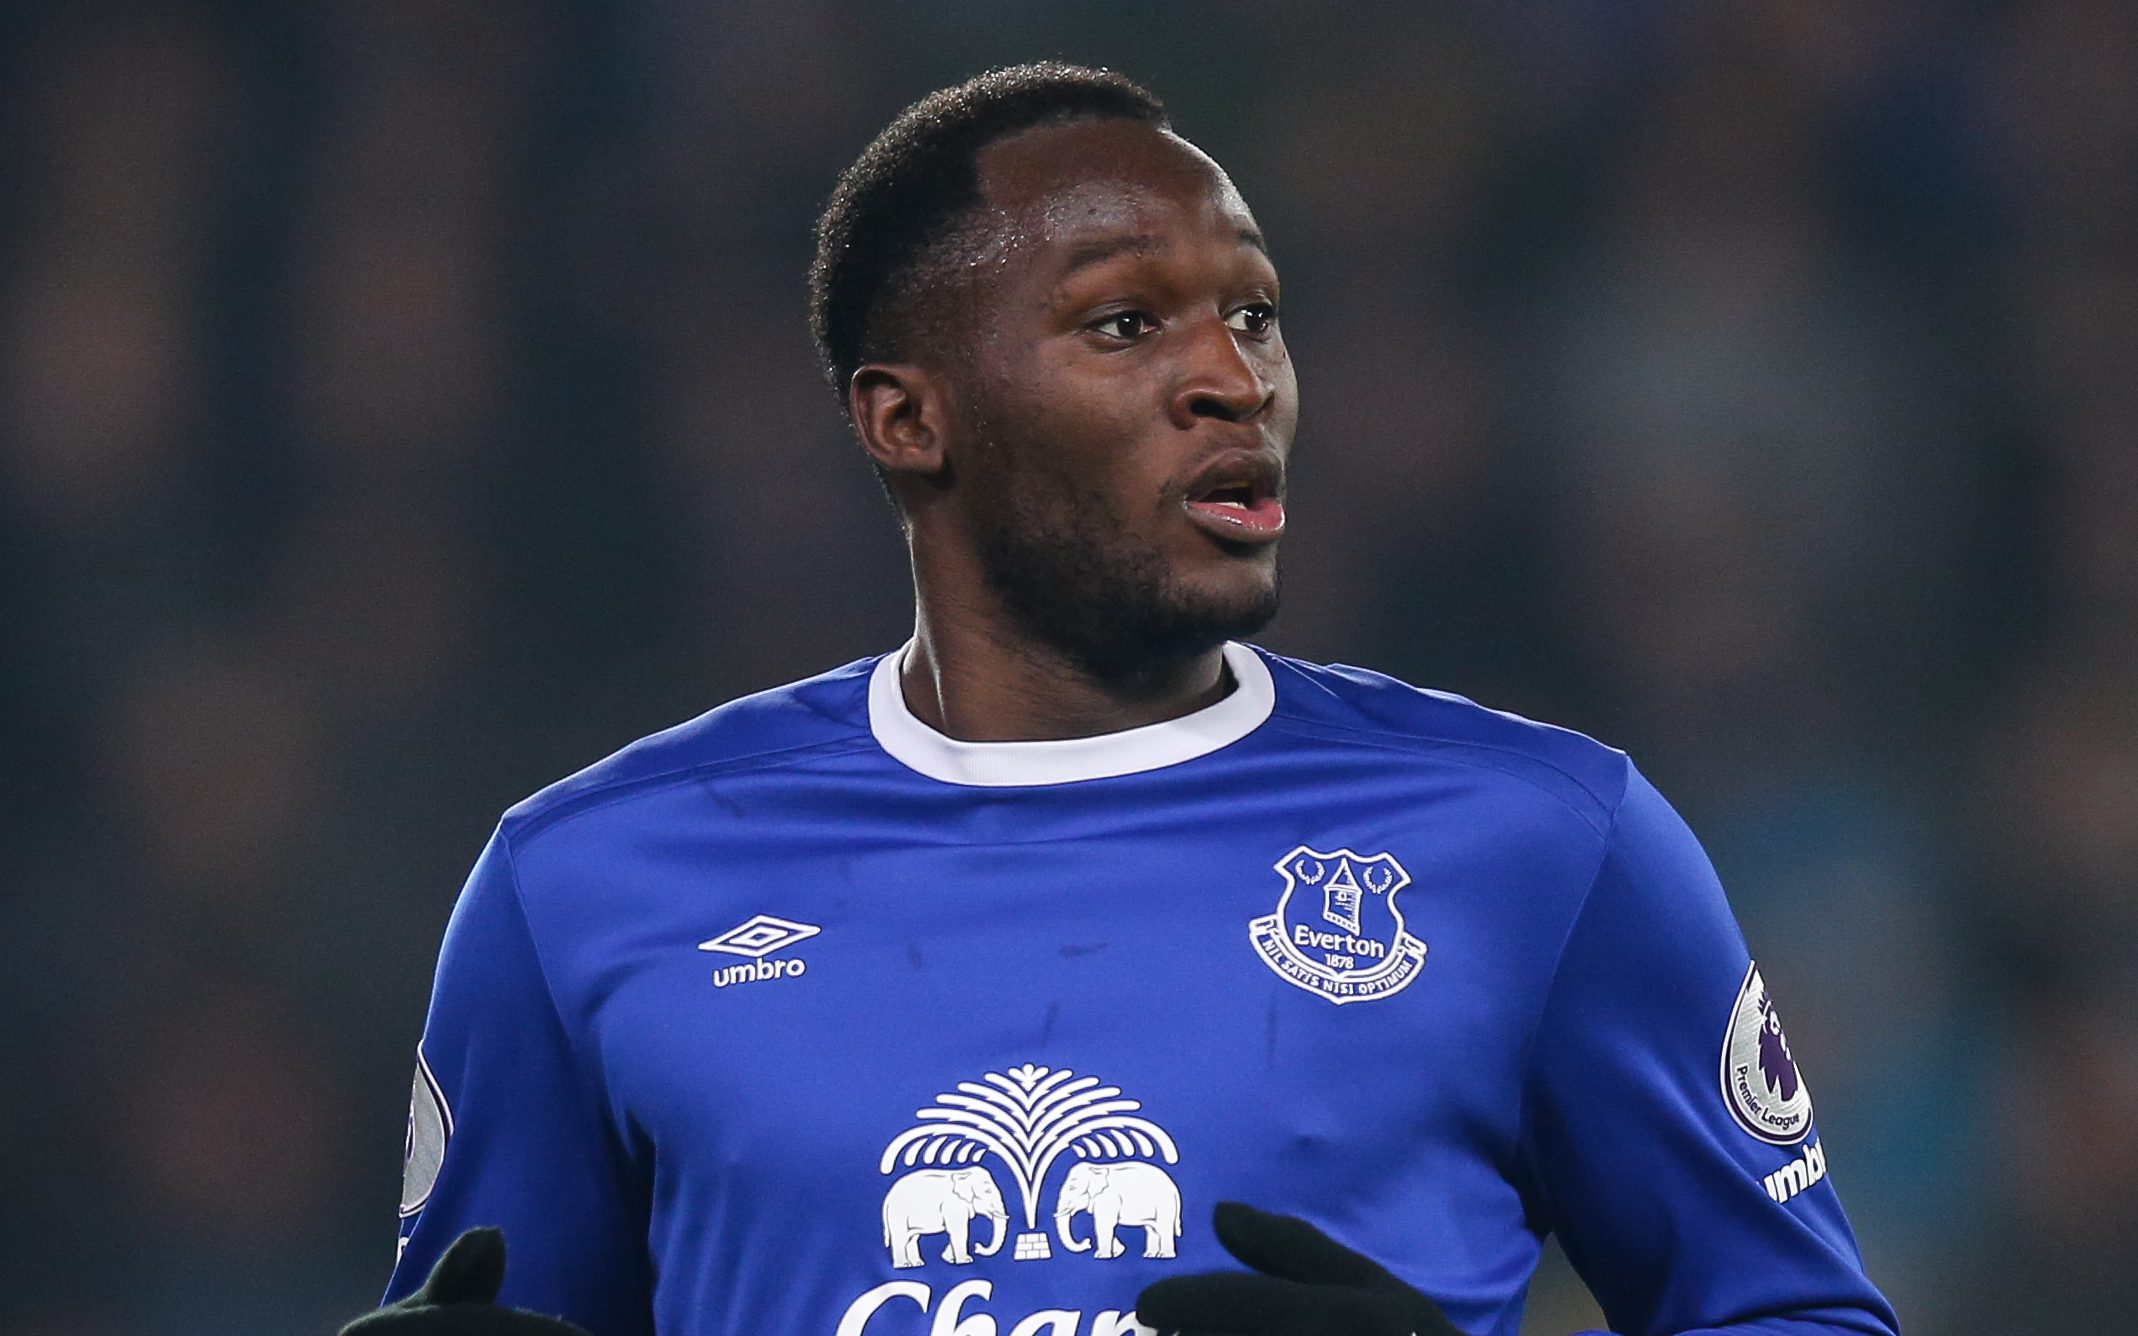 Chelsea and Manchester United given huge hope of signing Romelu Lukaku this summer